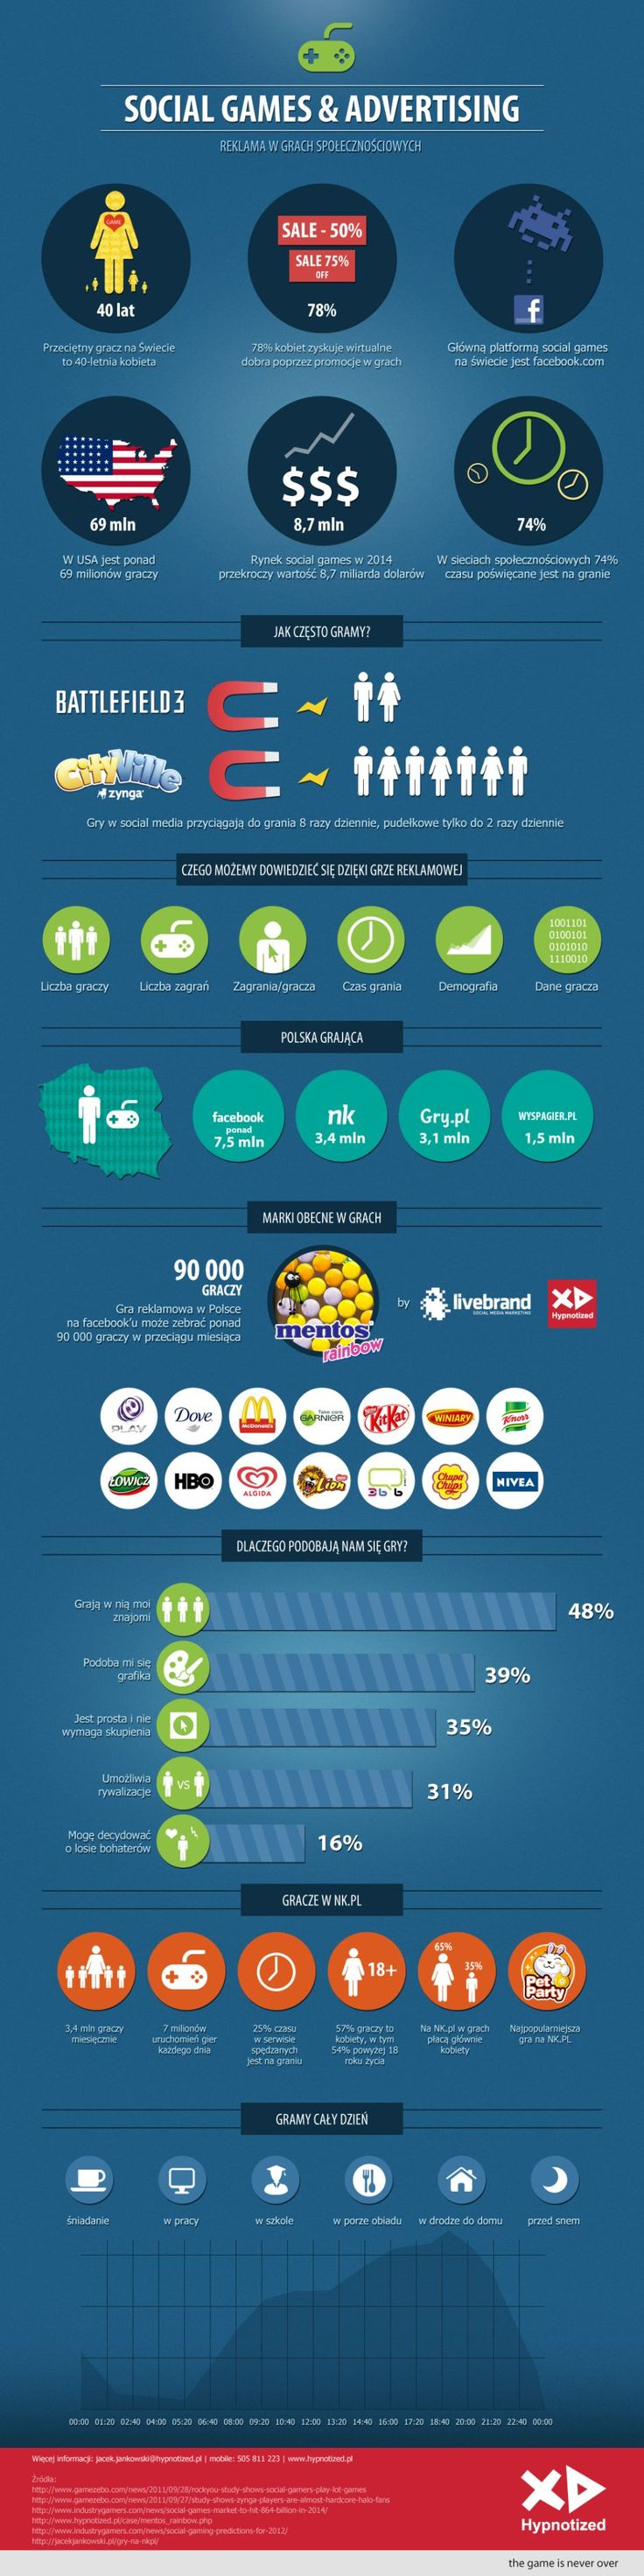 Social Games & Advertising #Infographic